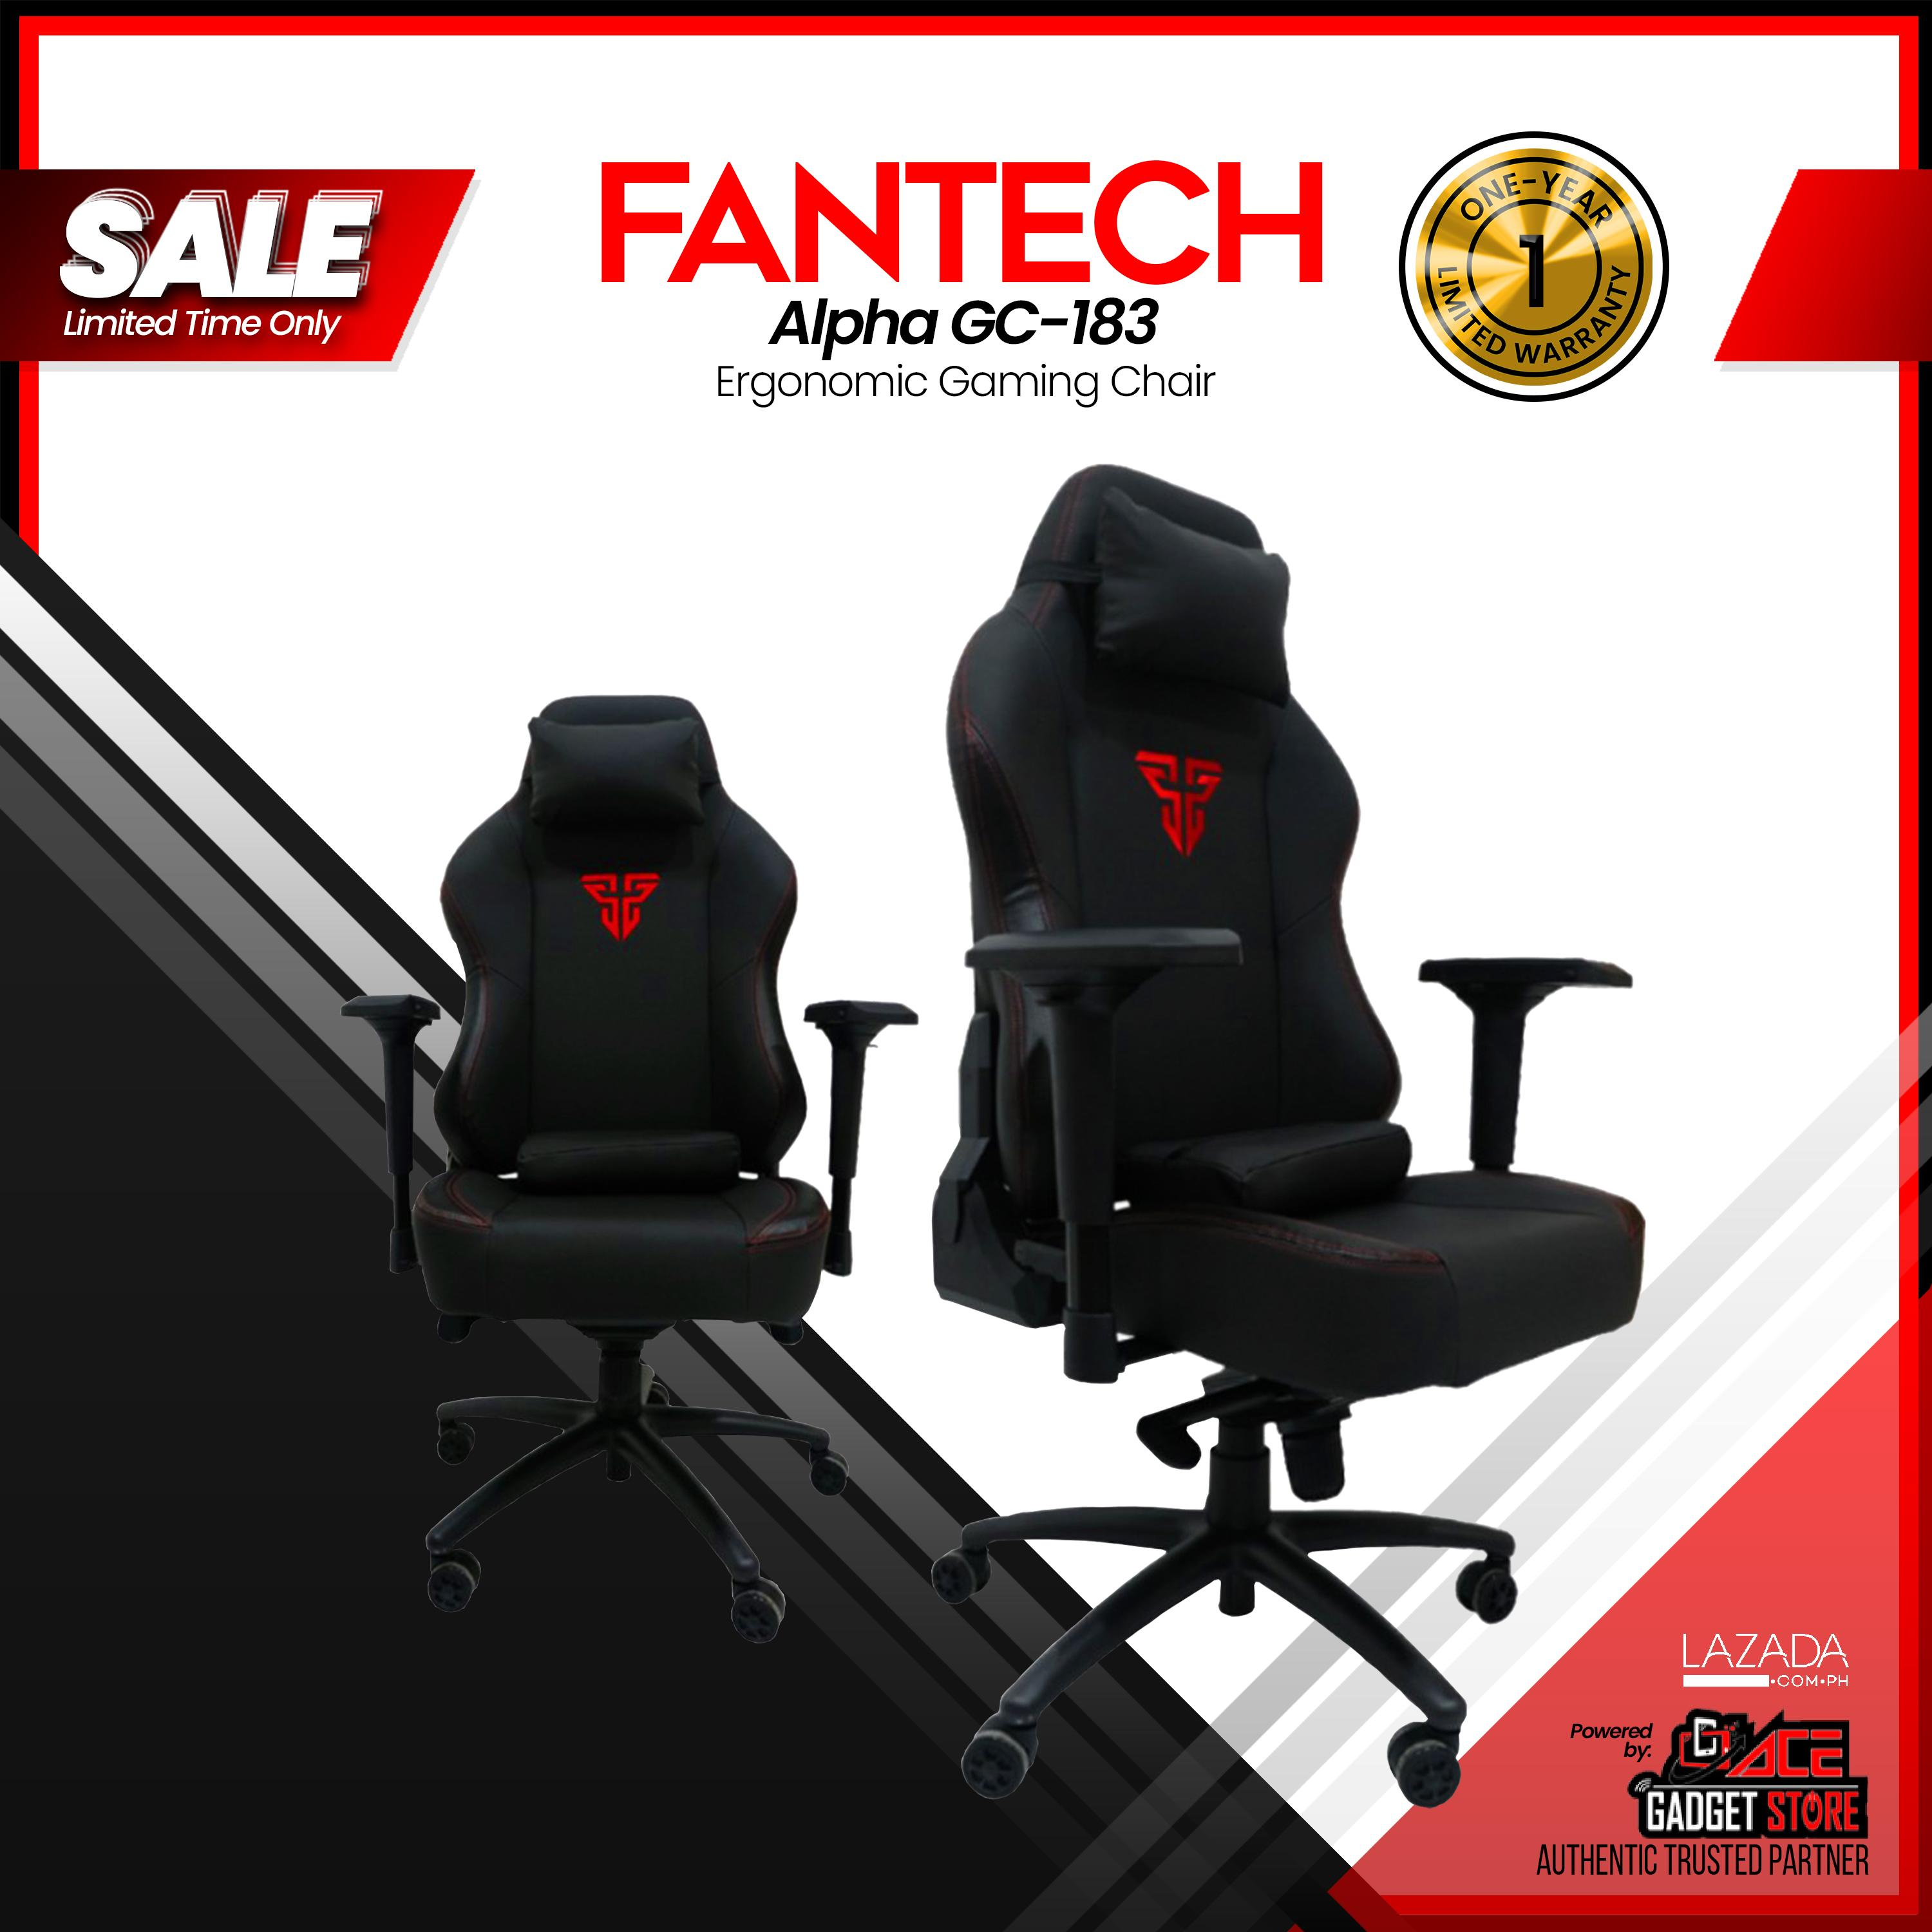 Fantech Alpha GC 183 Gaming Chair, High Quality Gaming Chair with Class 4  Hydraulic Piston, Detachable Lumbar Support